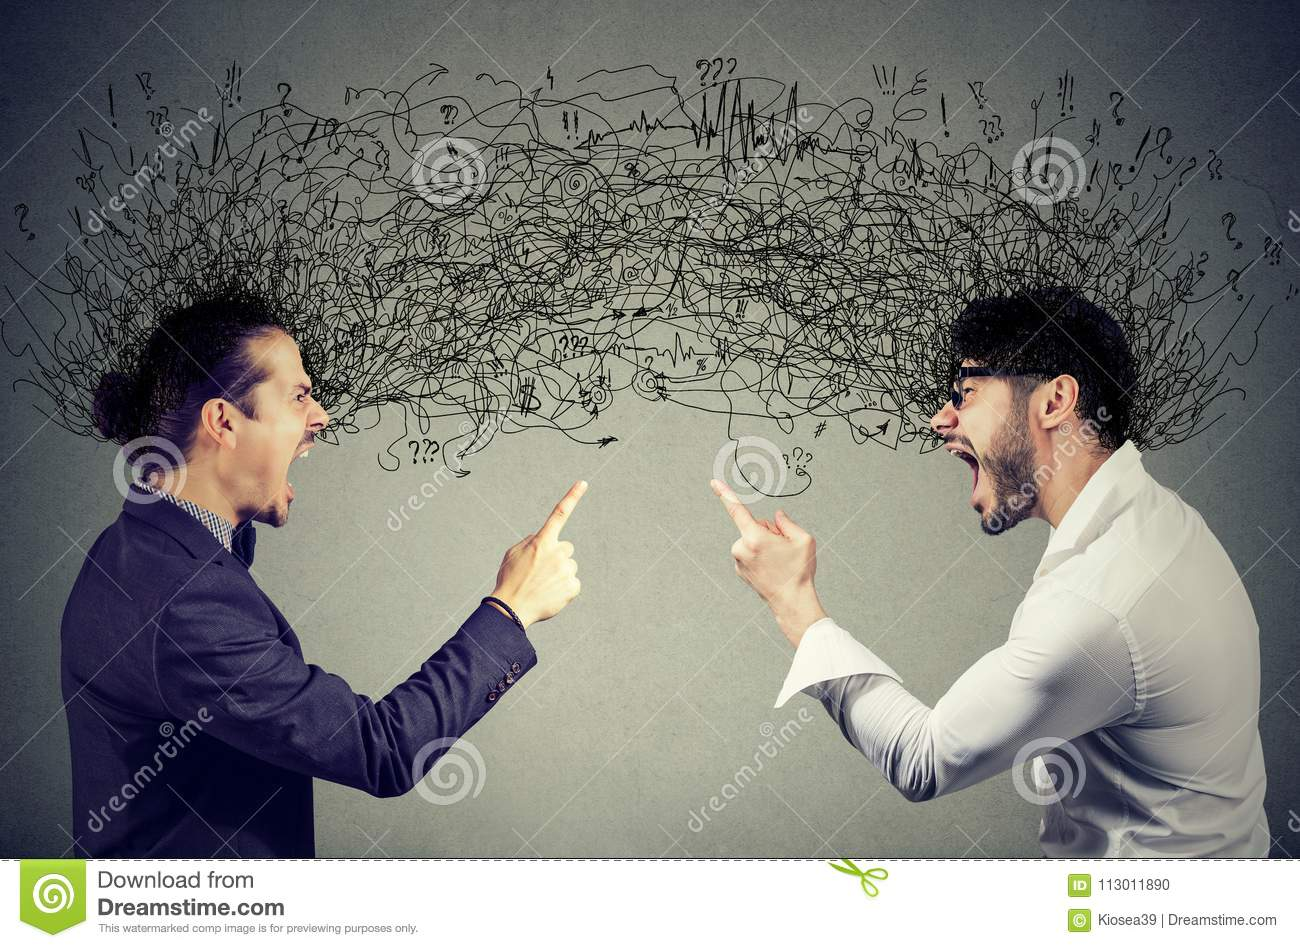 Angry men screaming at each other exchanging with negative thoughts